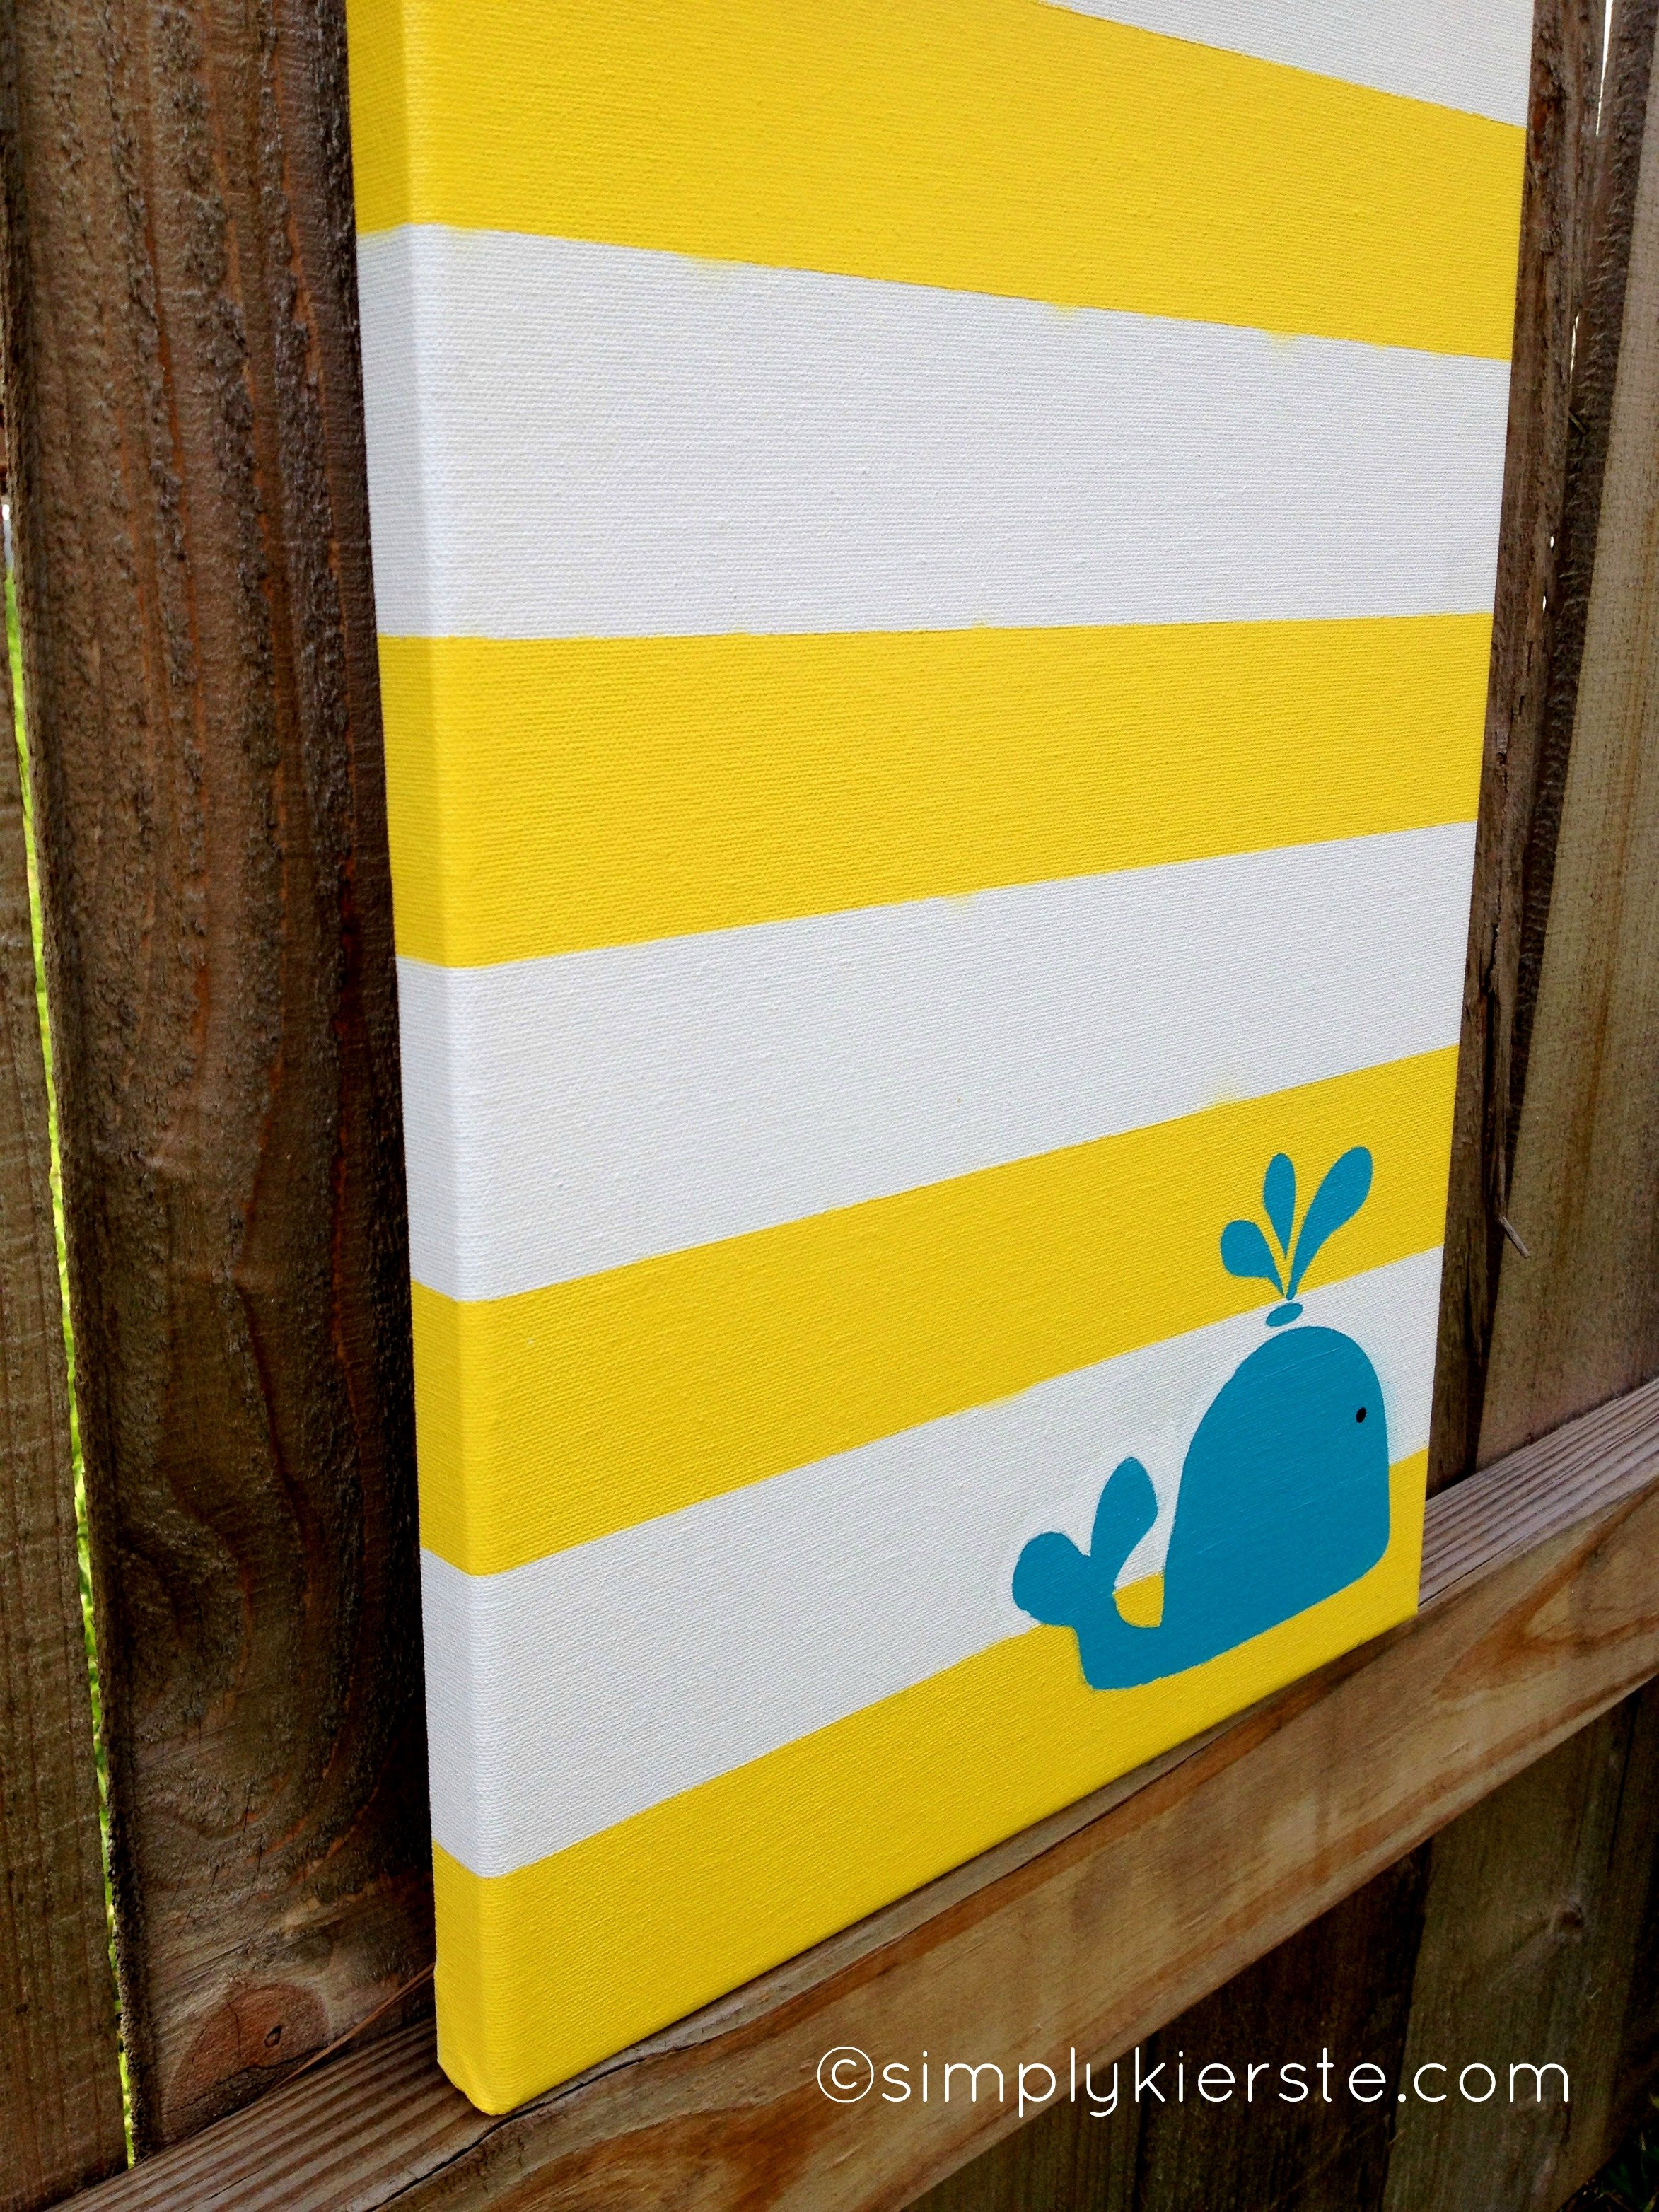 Striped Canvas Art | simplykierste.com